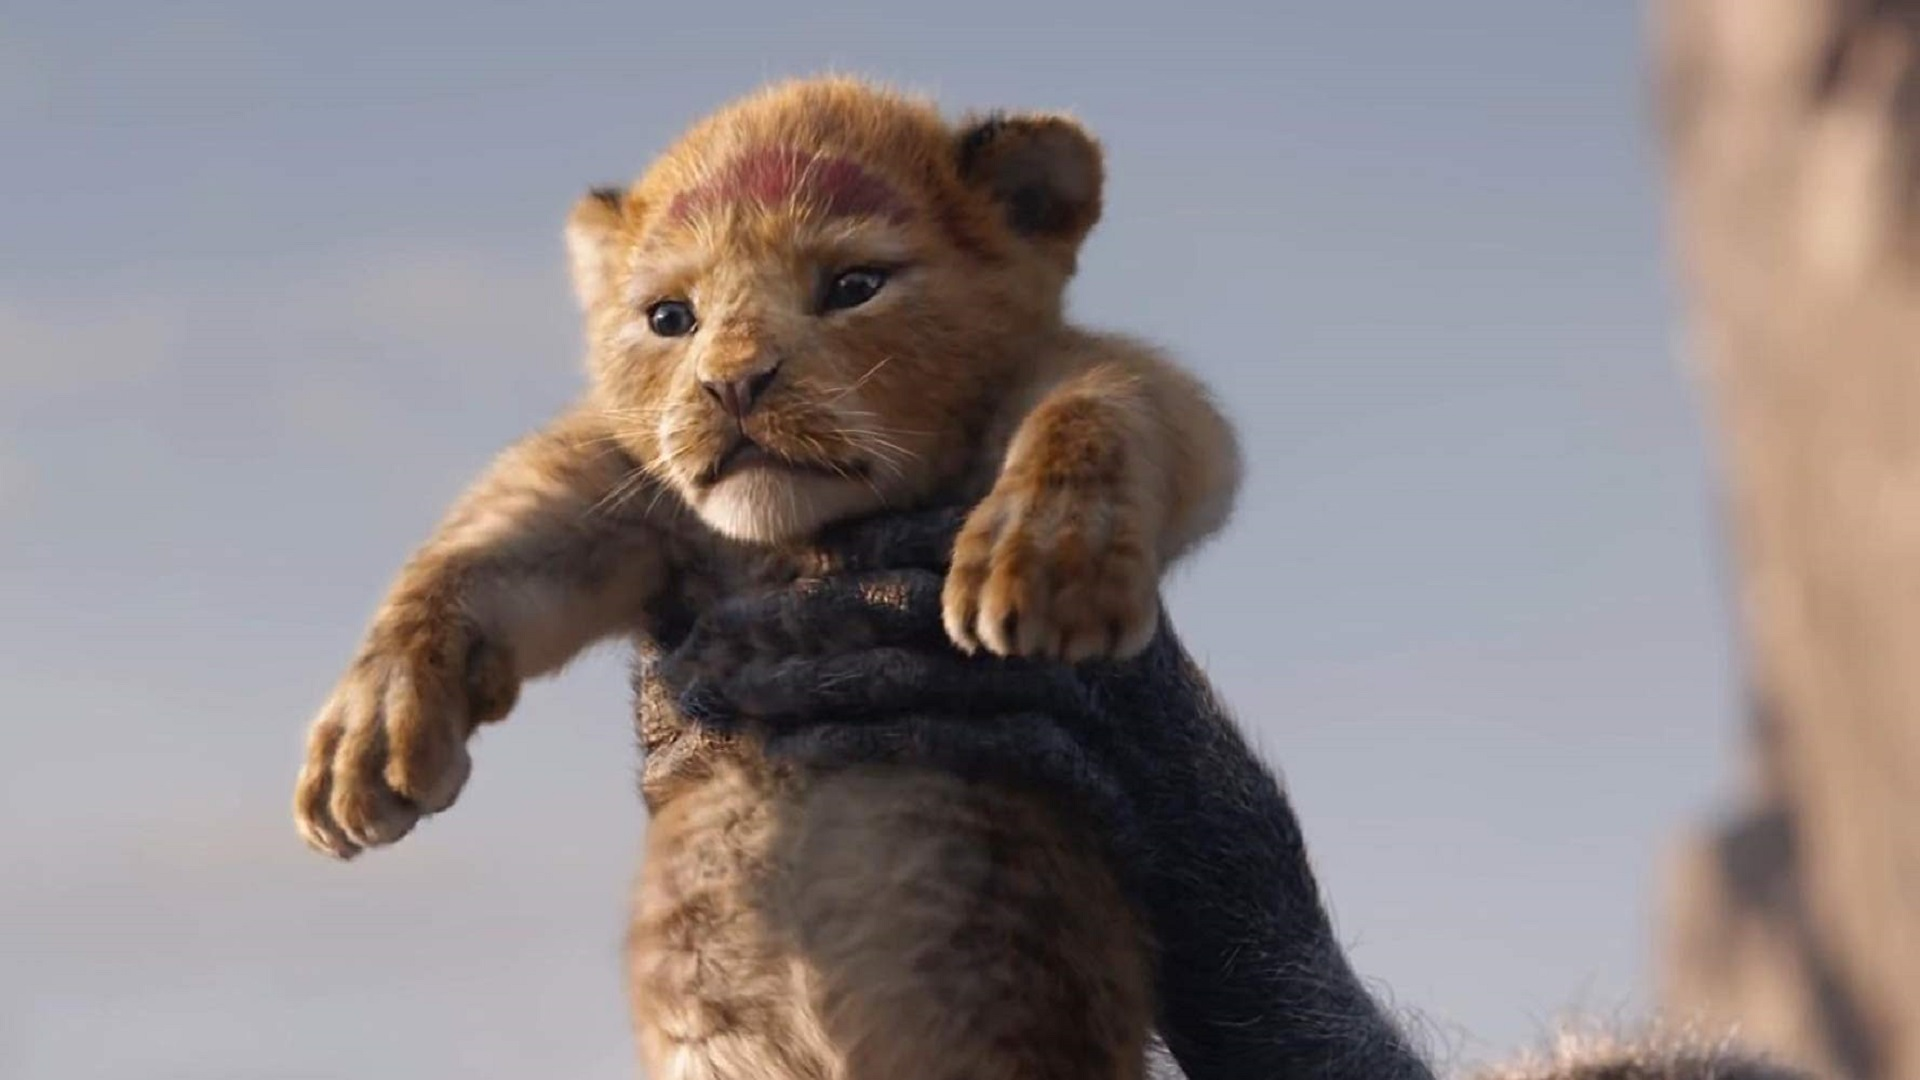 The Lion King 2019 Wallpapers